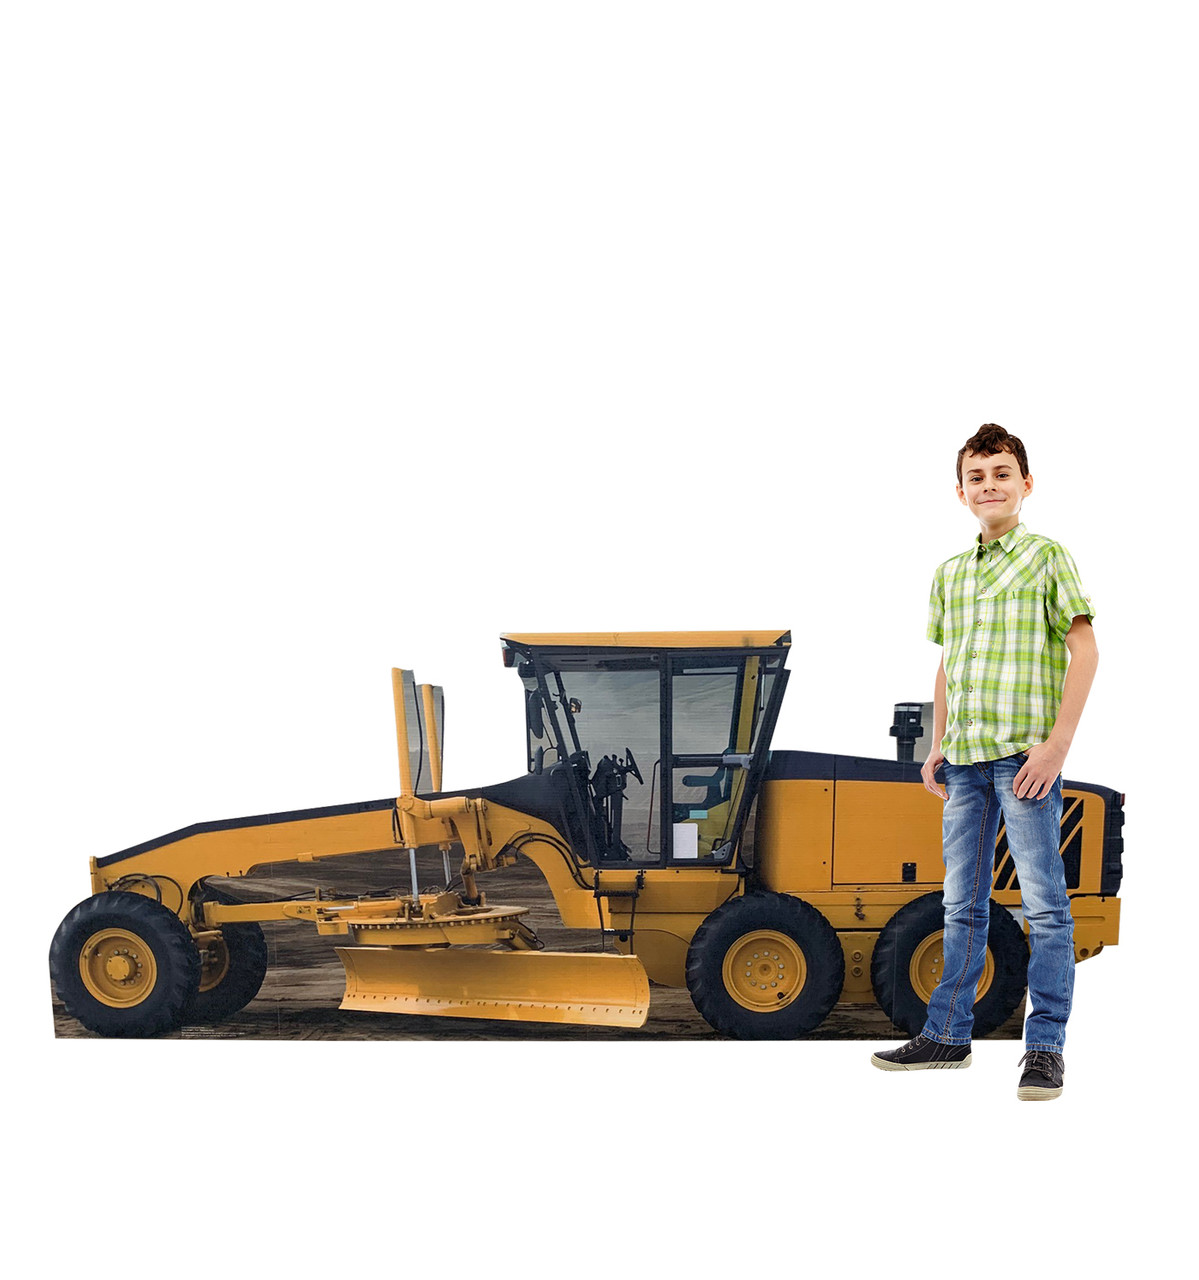 Life-size cardboard standee of a construction grader with model.